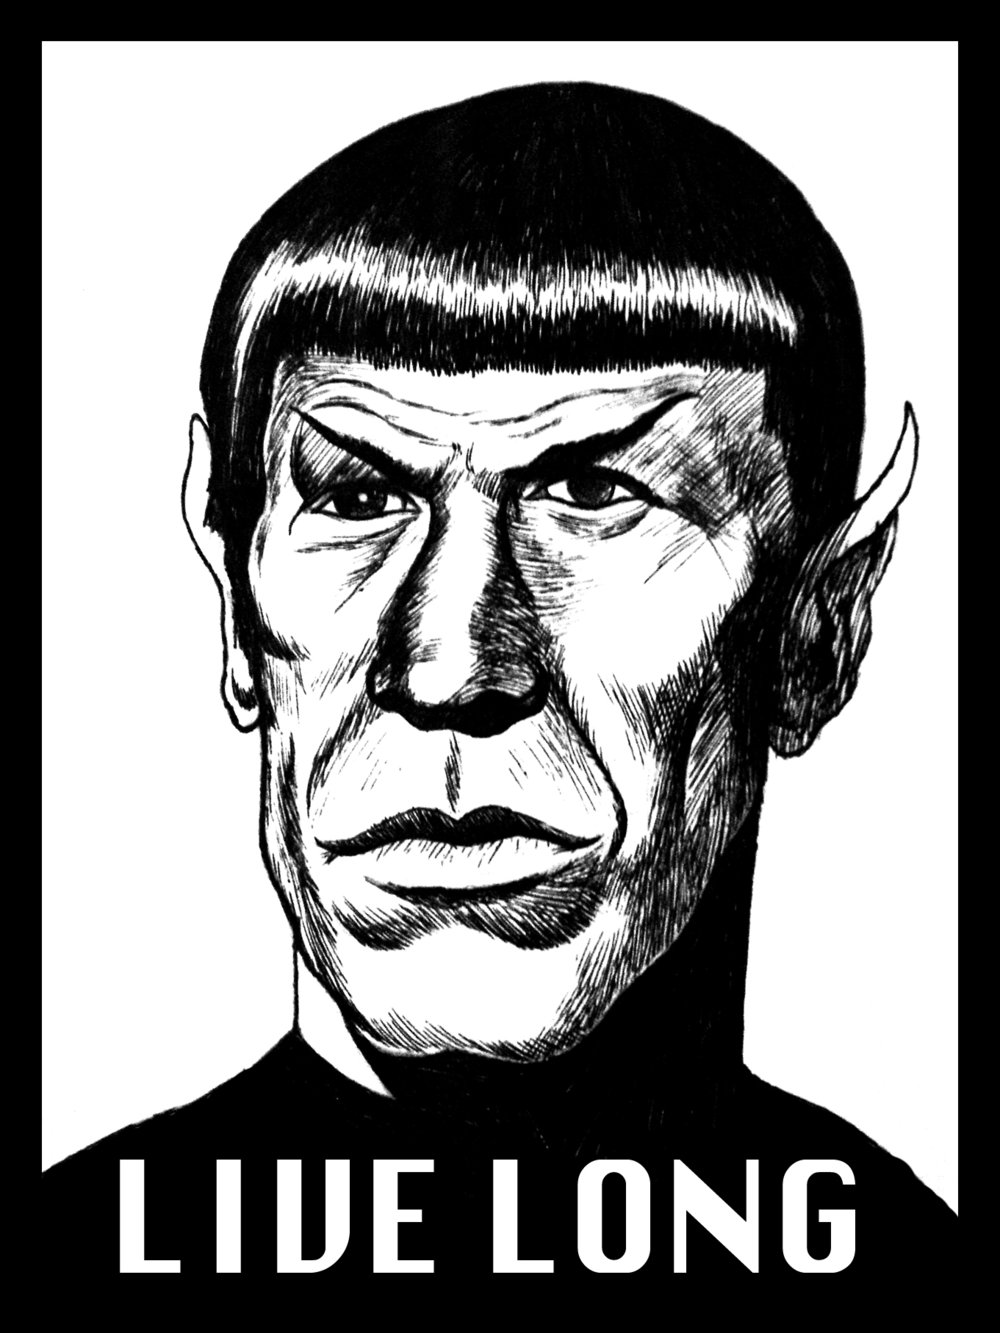 Dr. Spock  2014 ink and digital